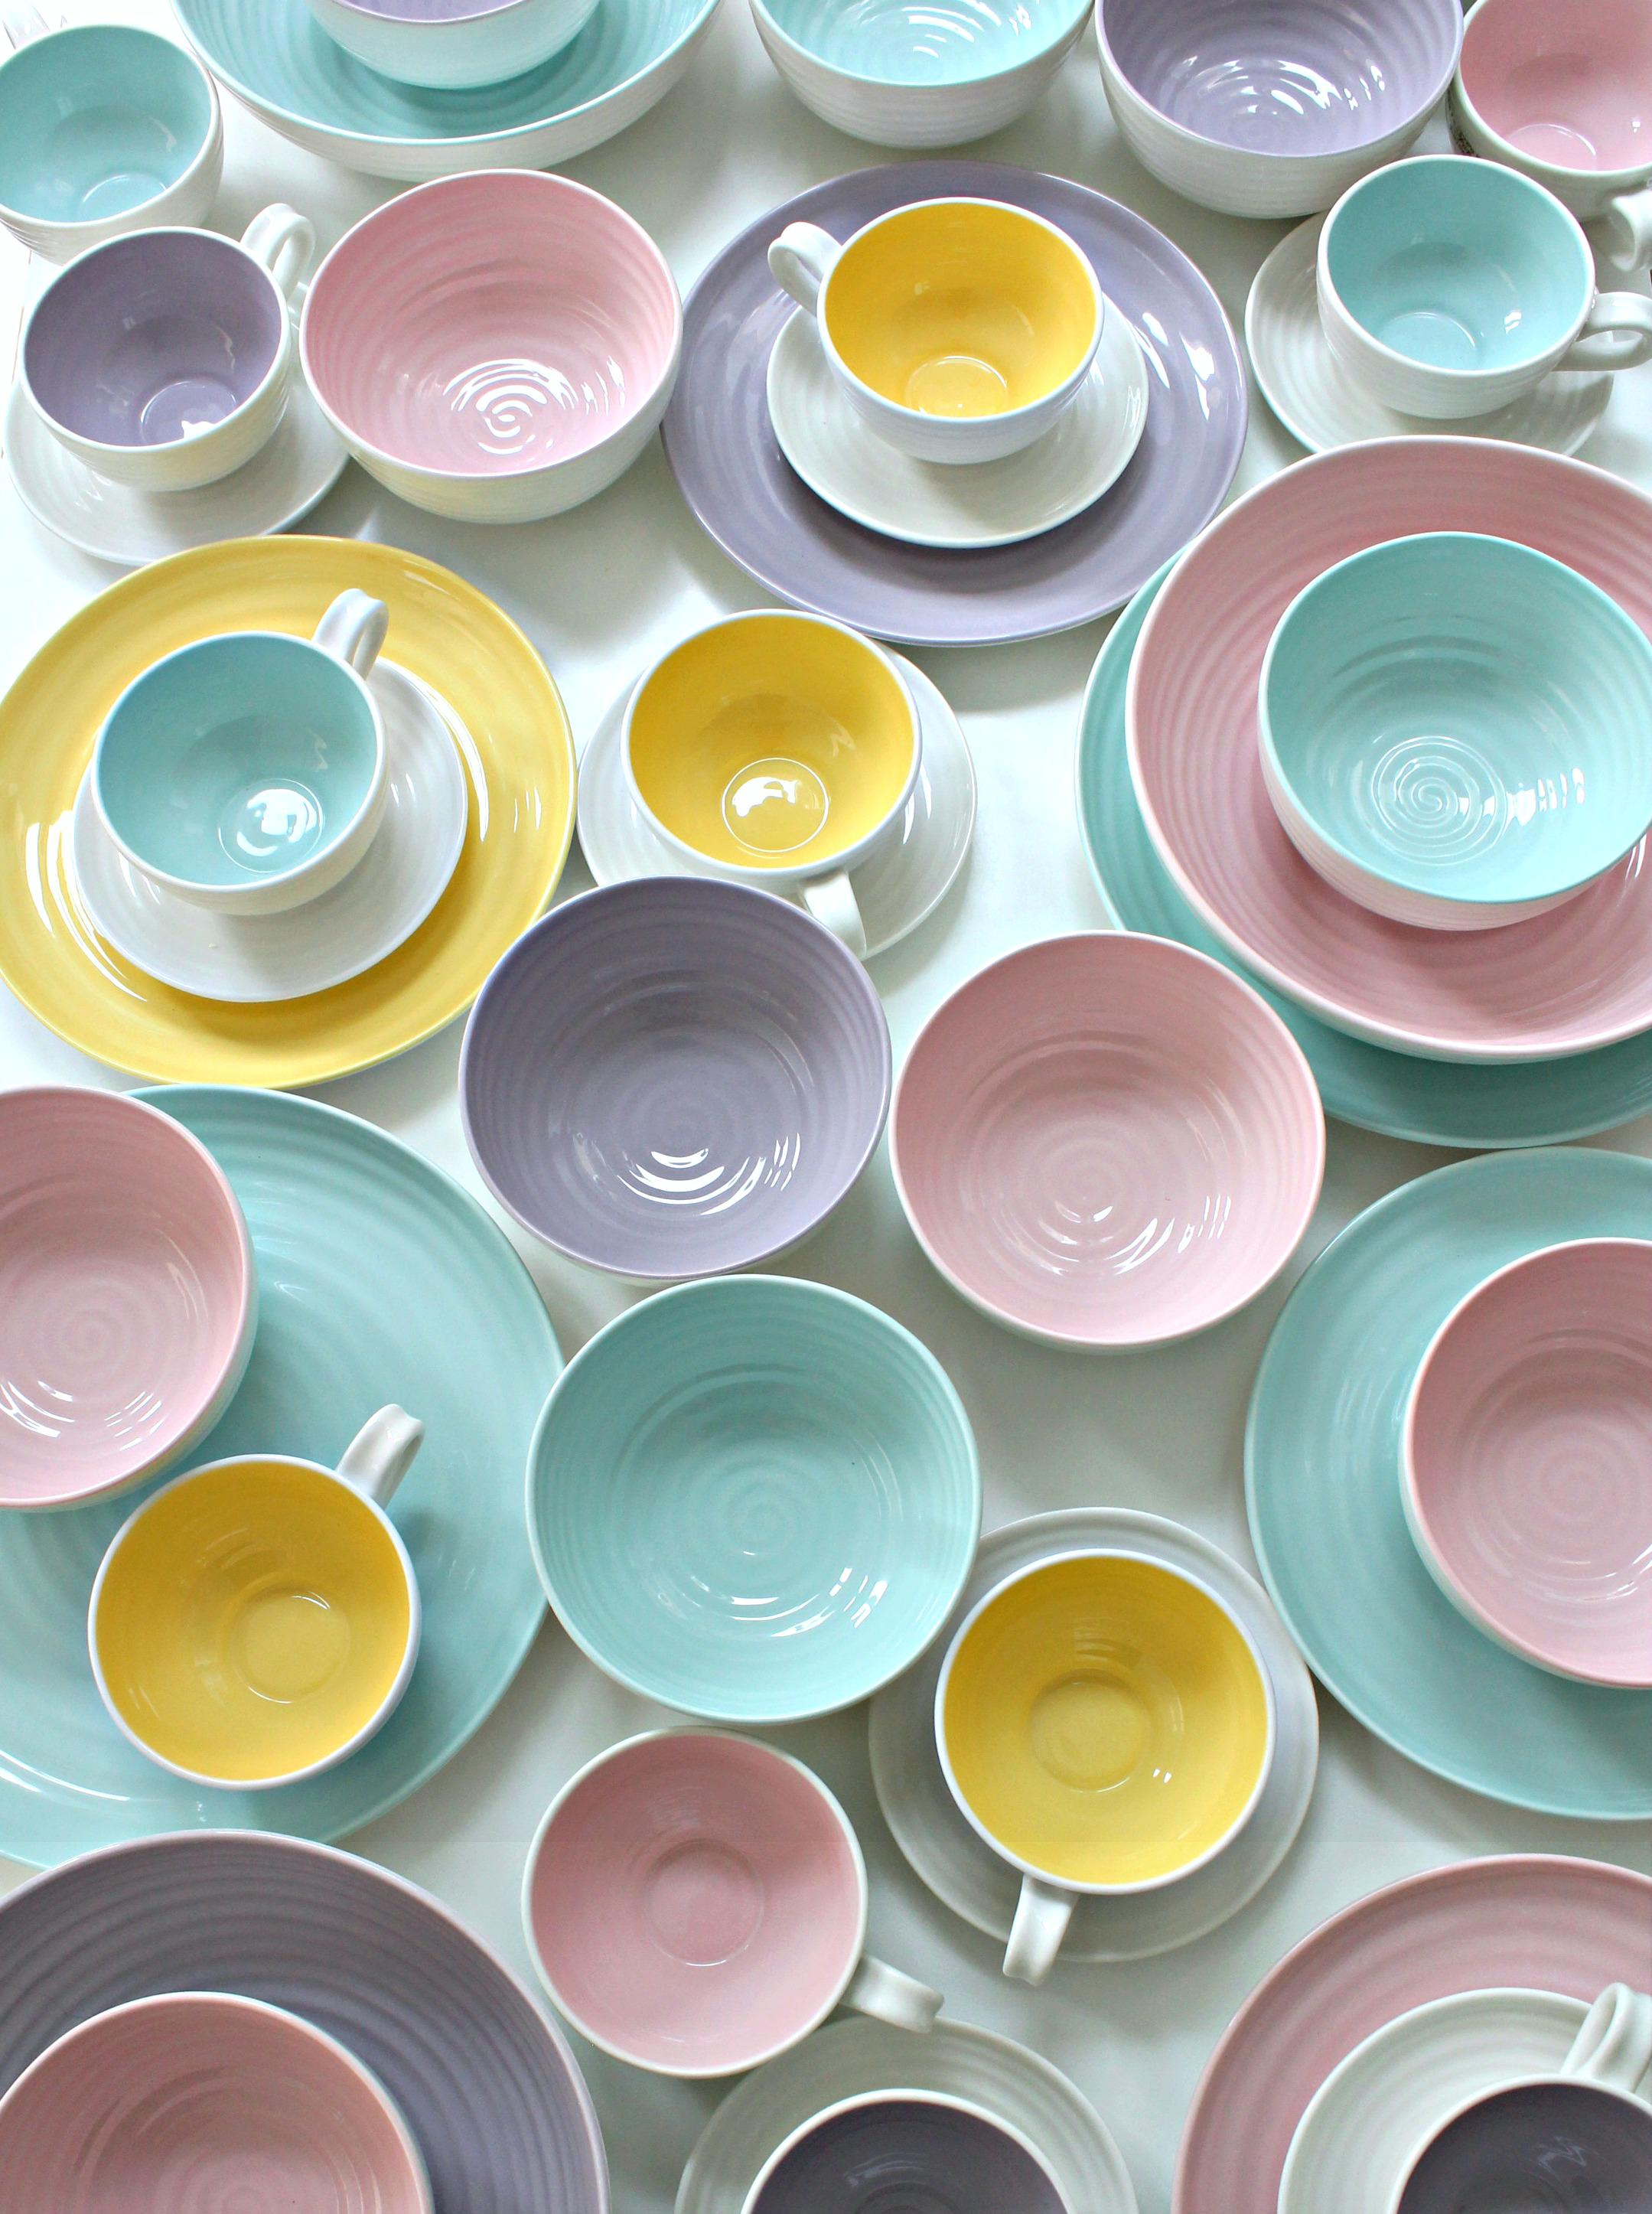 Sophie Conran for Portmeirion & littleBIGBELL Sophie Conran for Portmeirion Colourpop tableware range